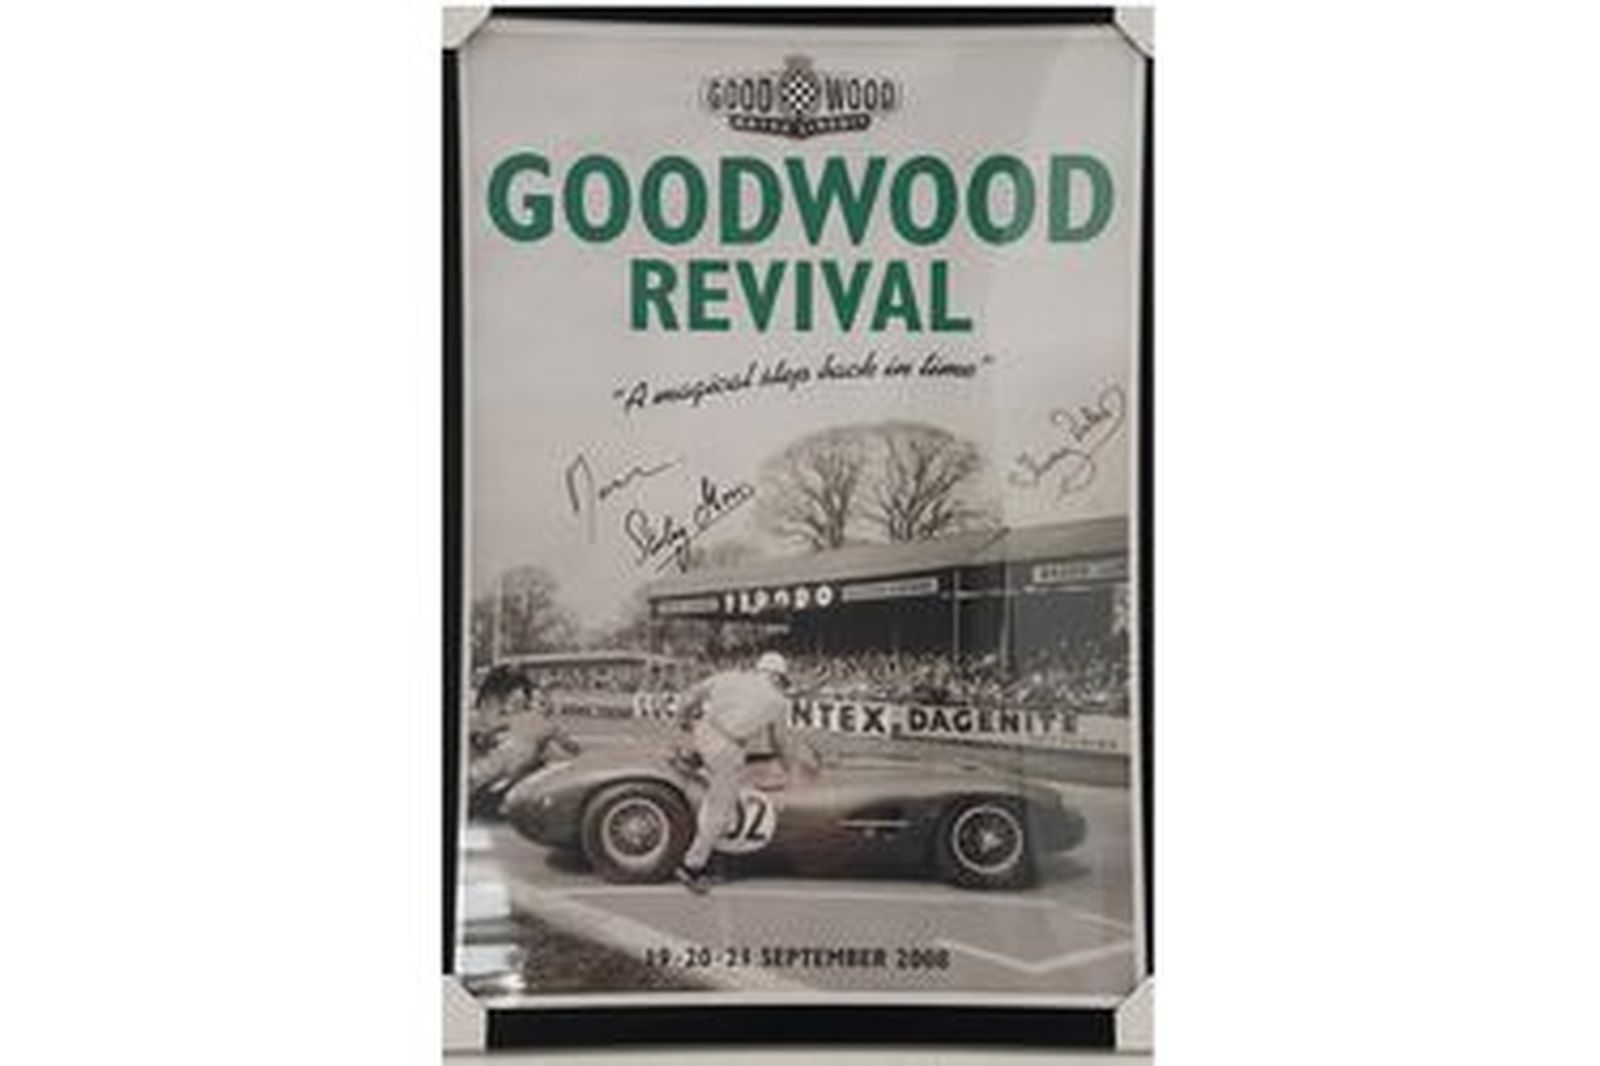 Framed Signed Print - 2008 Goodwood Revival signed by Stirling Moss, Murray Walker and Lord March